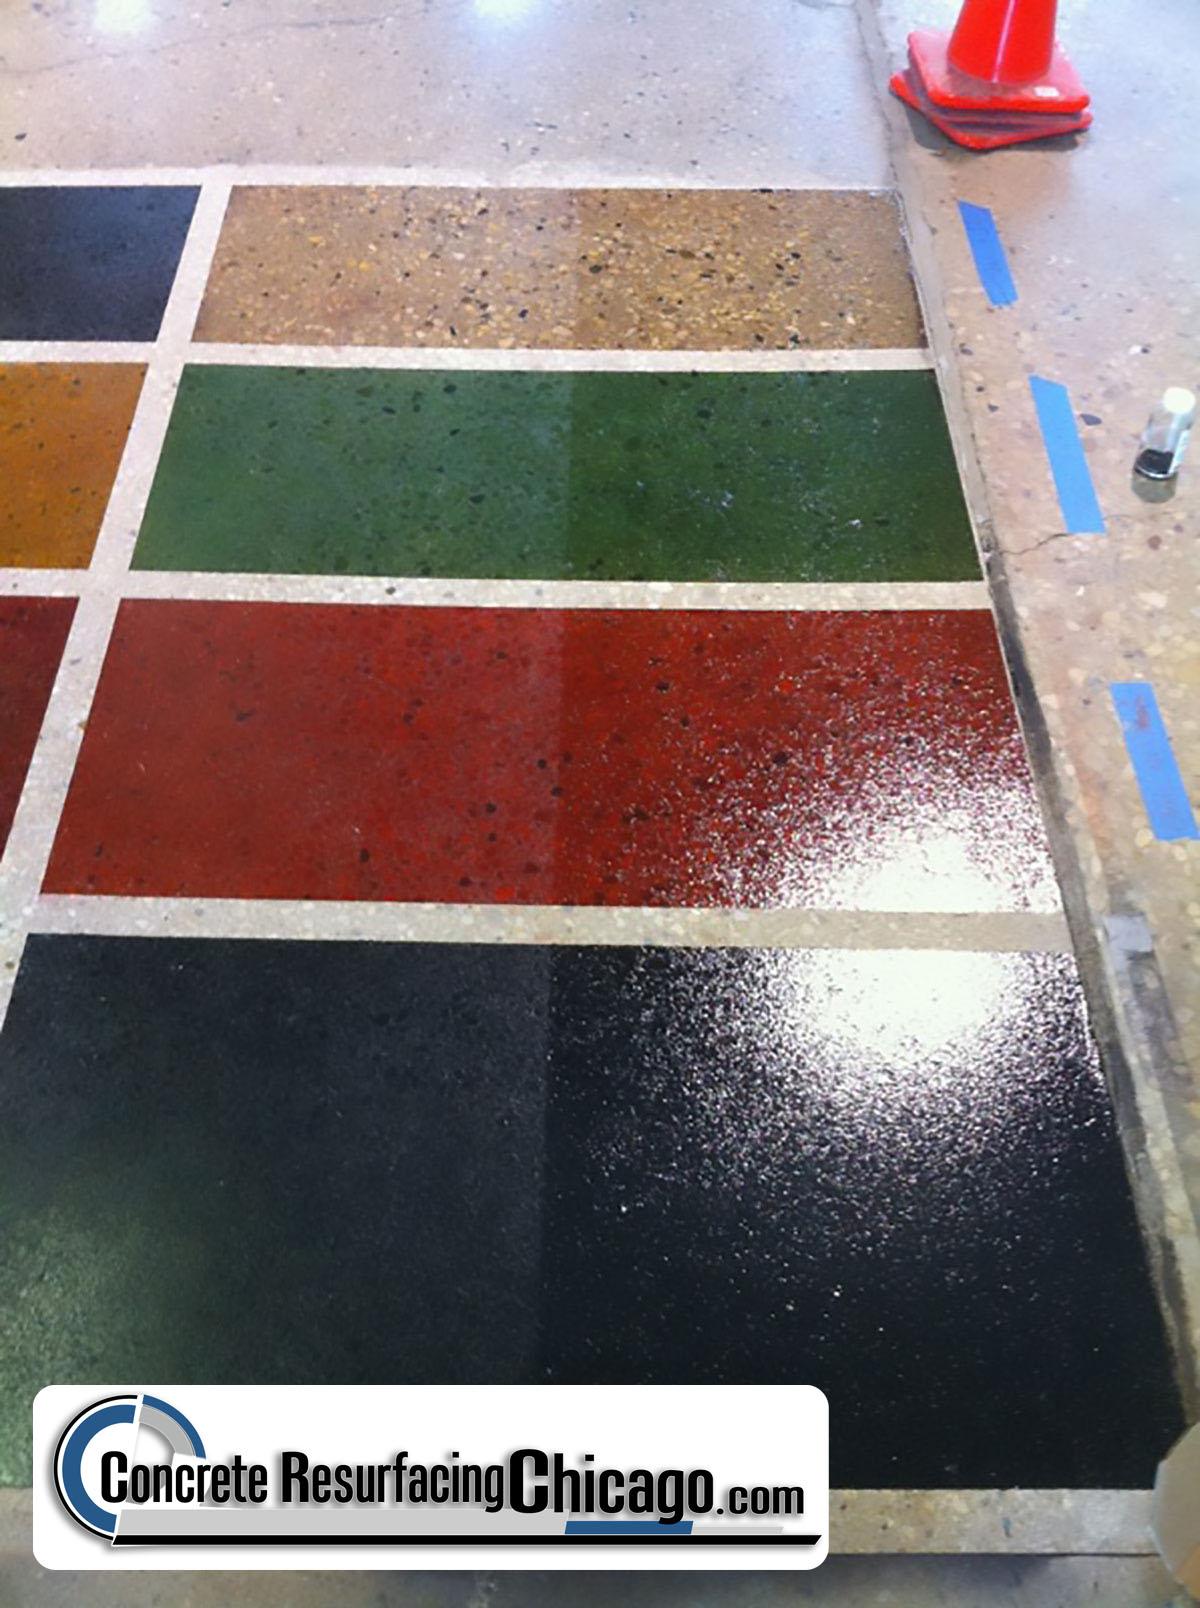 630-448-0317 - Concrete Resurfacing Solutions Serving Chicagoland